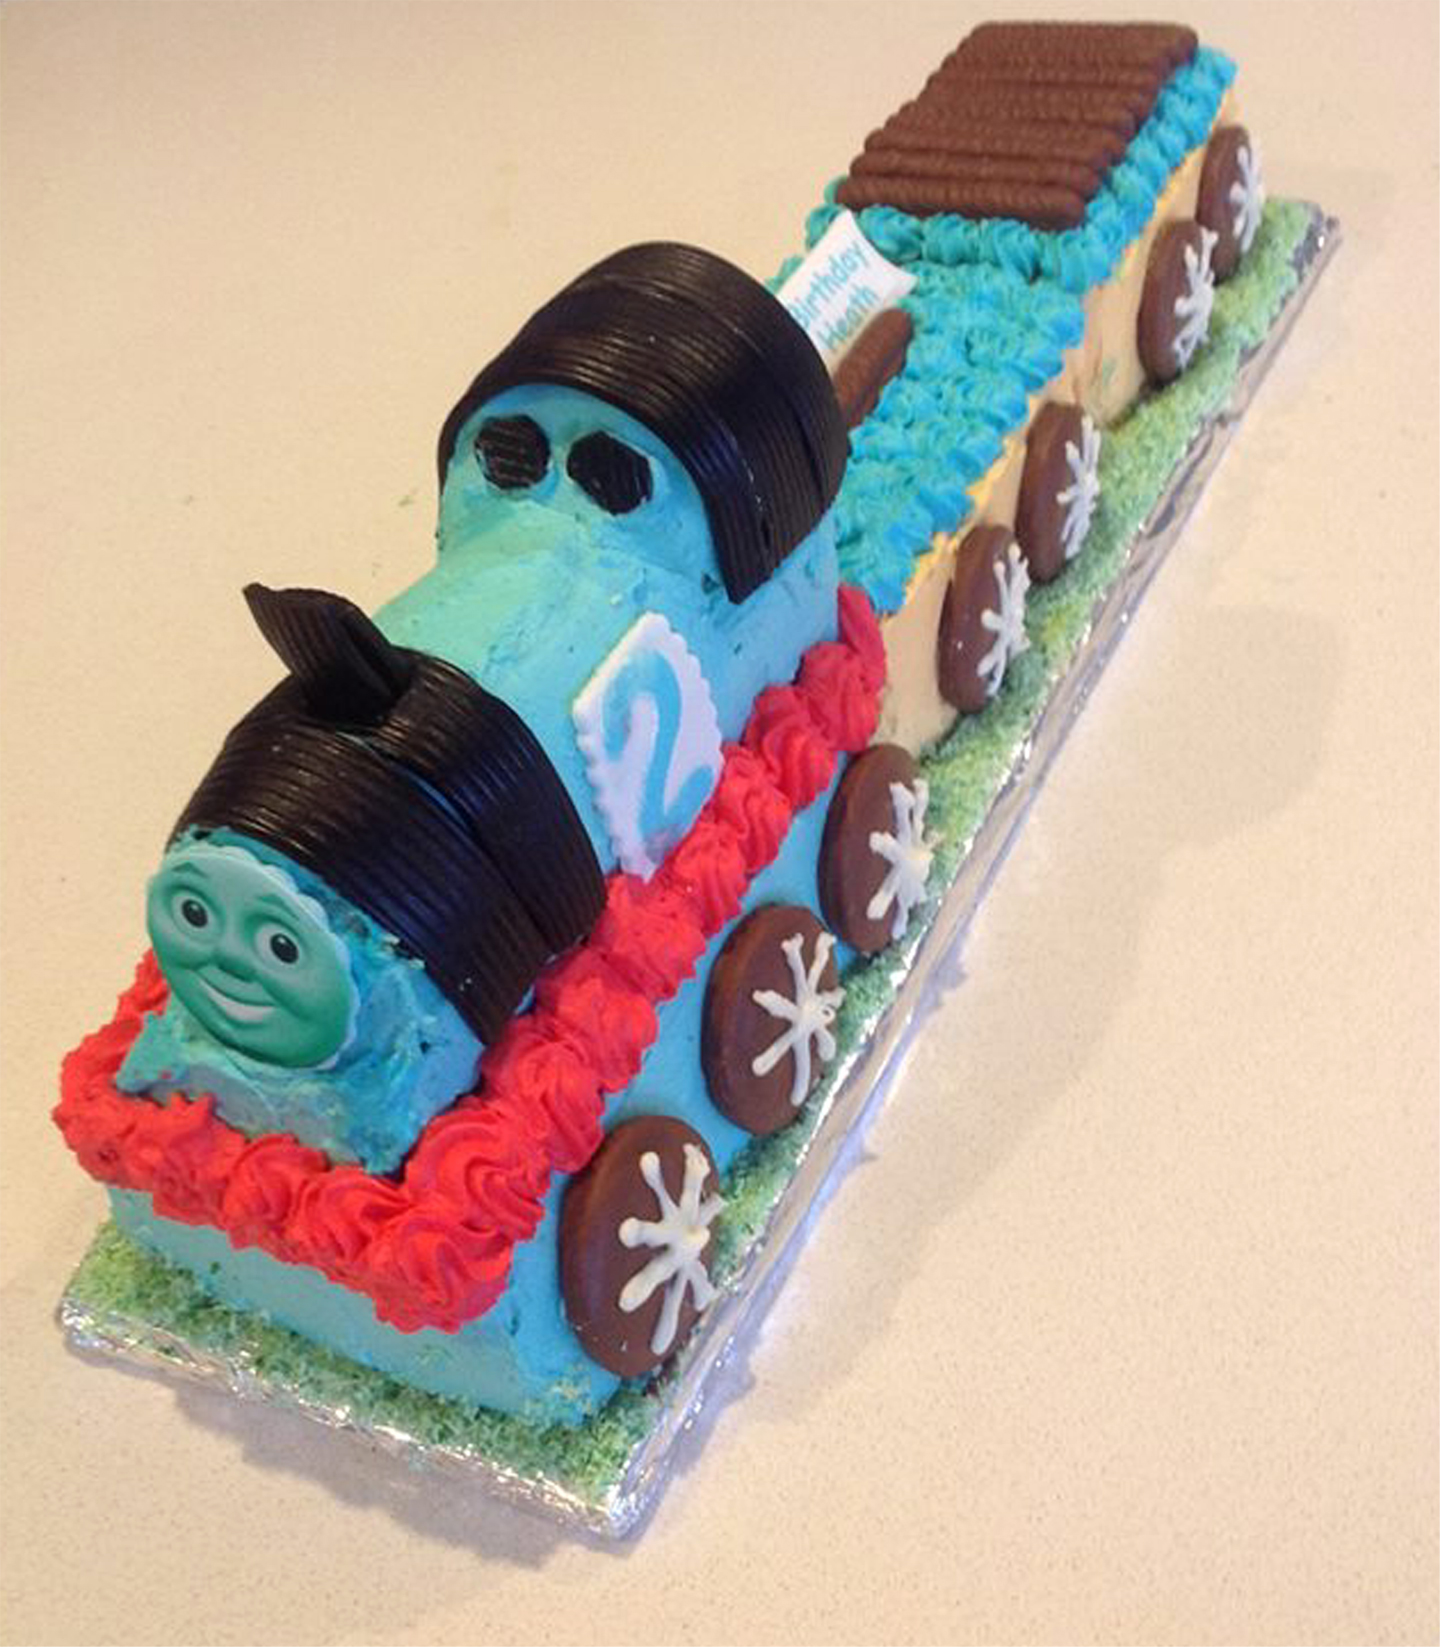 Thomas the train the Boys favorite at French Haven Patisserie - Bakery at Craigieburn Highlands